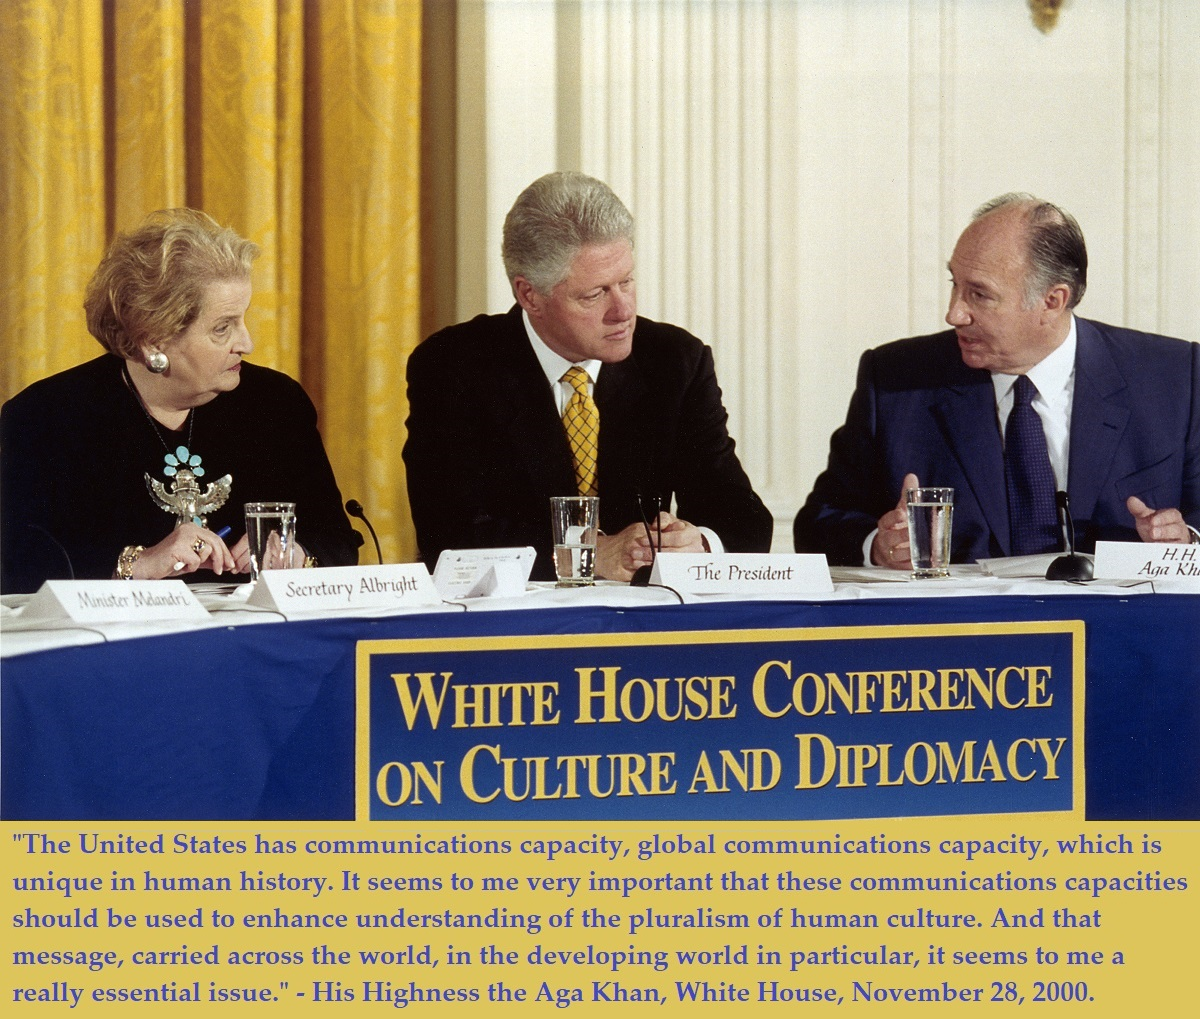 Watch video: His Highness the Aga Khan at White House Conference on Culture and Diplomacy hosted by US President Bill Clinton and First Lady Hillary Clinton